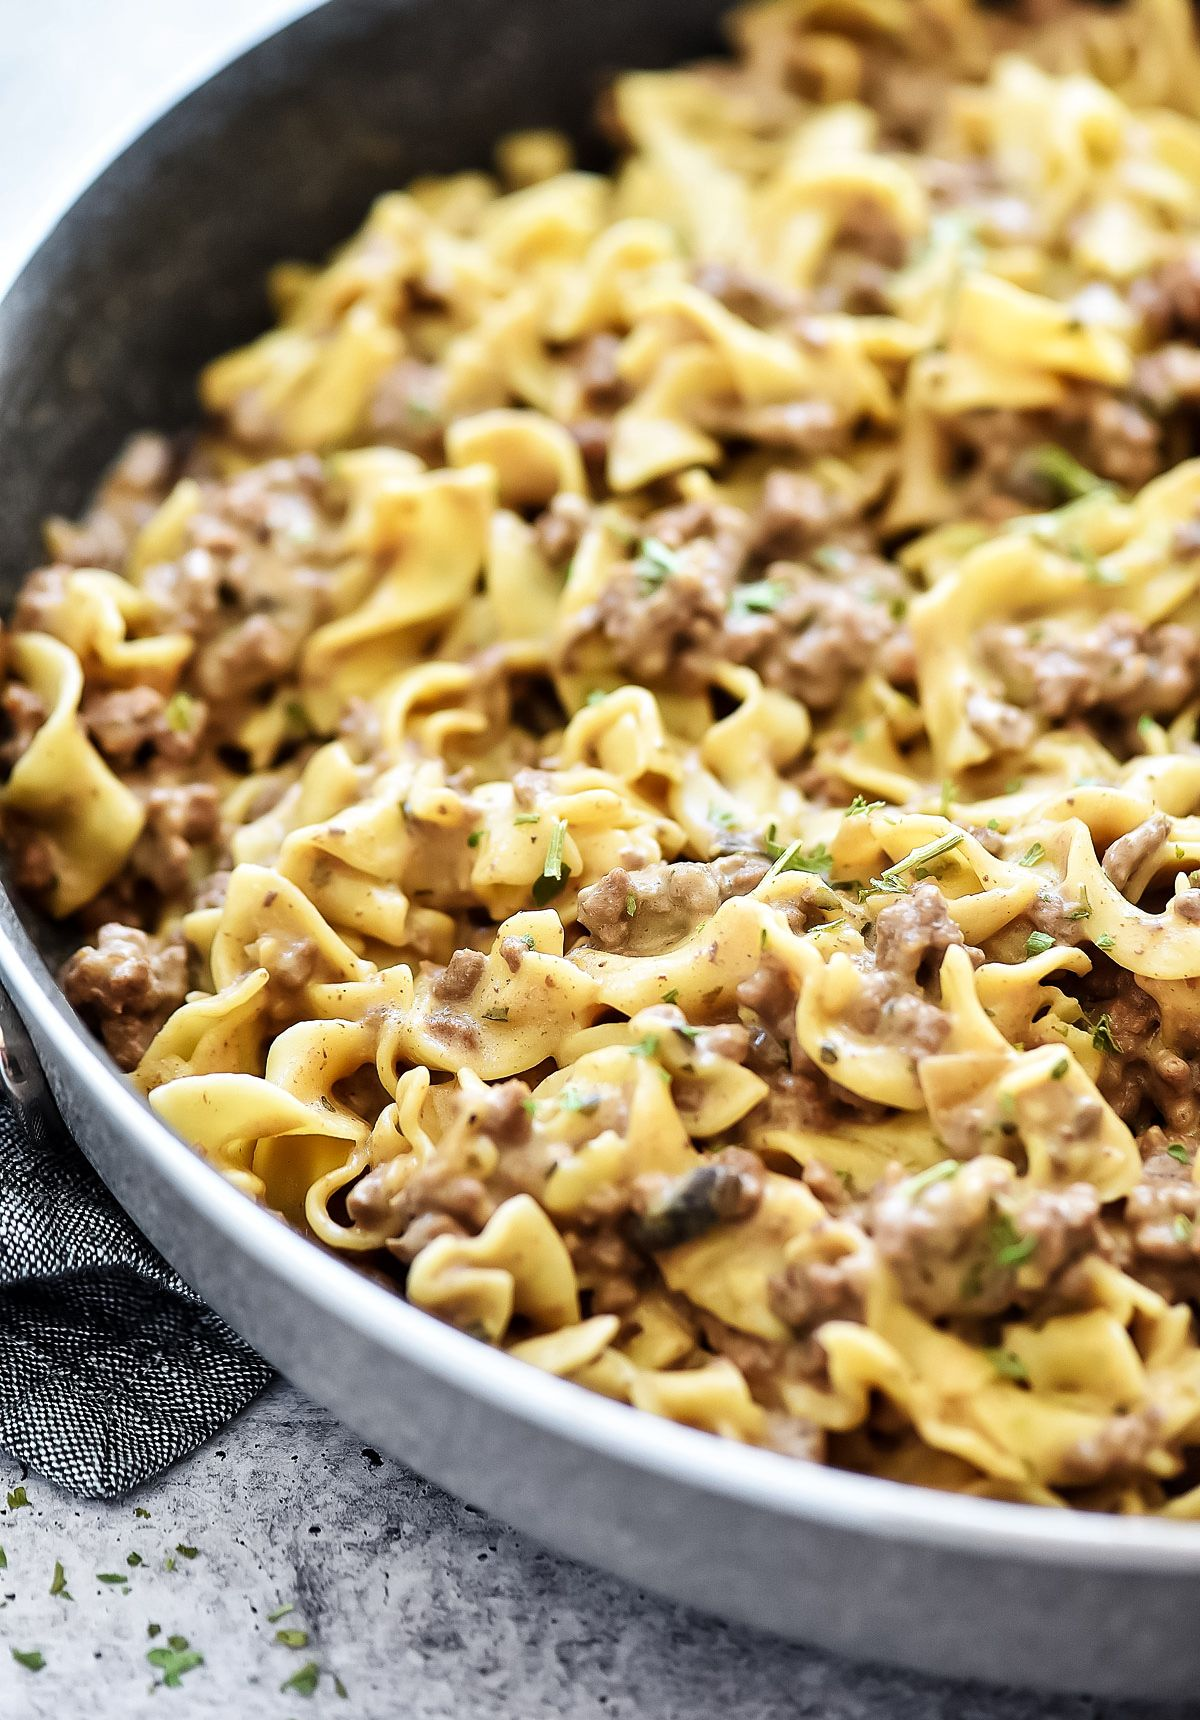 Easy Beef Stroganoff Is Filled With Ground Beef And A Mushroom Sauce Served Over Egg Noodles Life In The Lof In 2020 Beef Stroganoff Easy Beef Stroganoff Beef Recipes